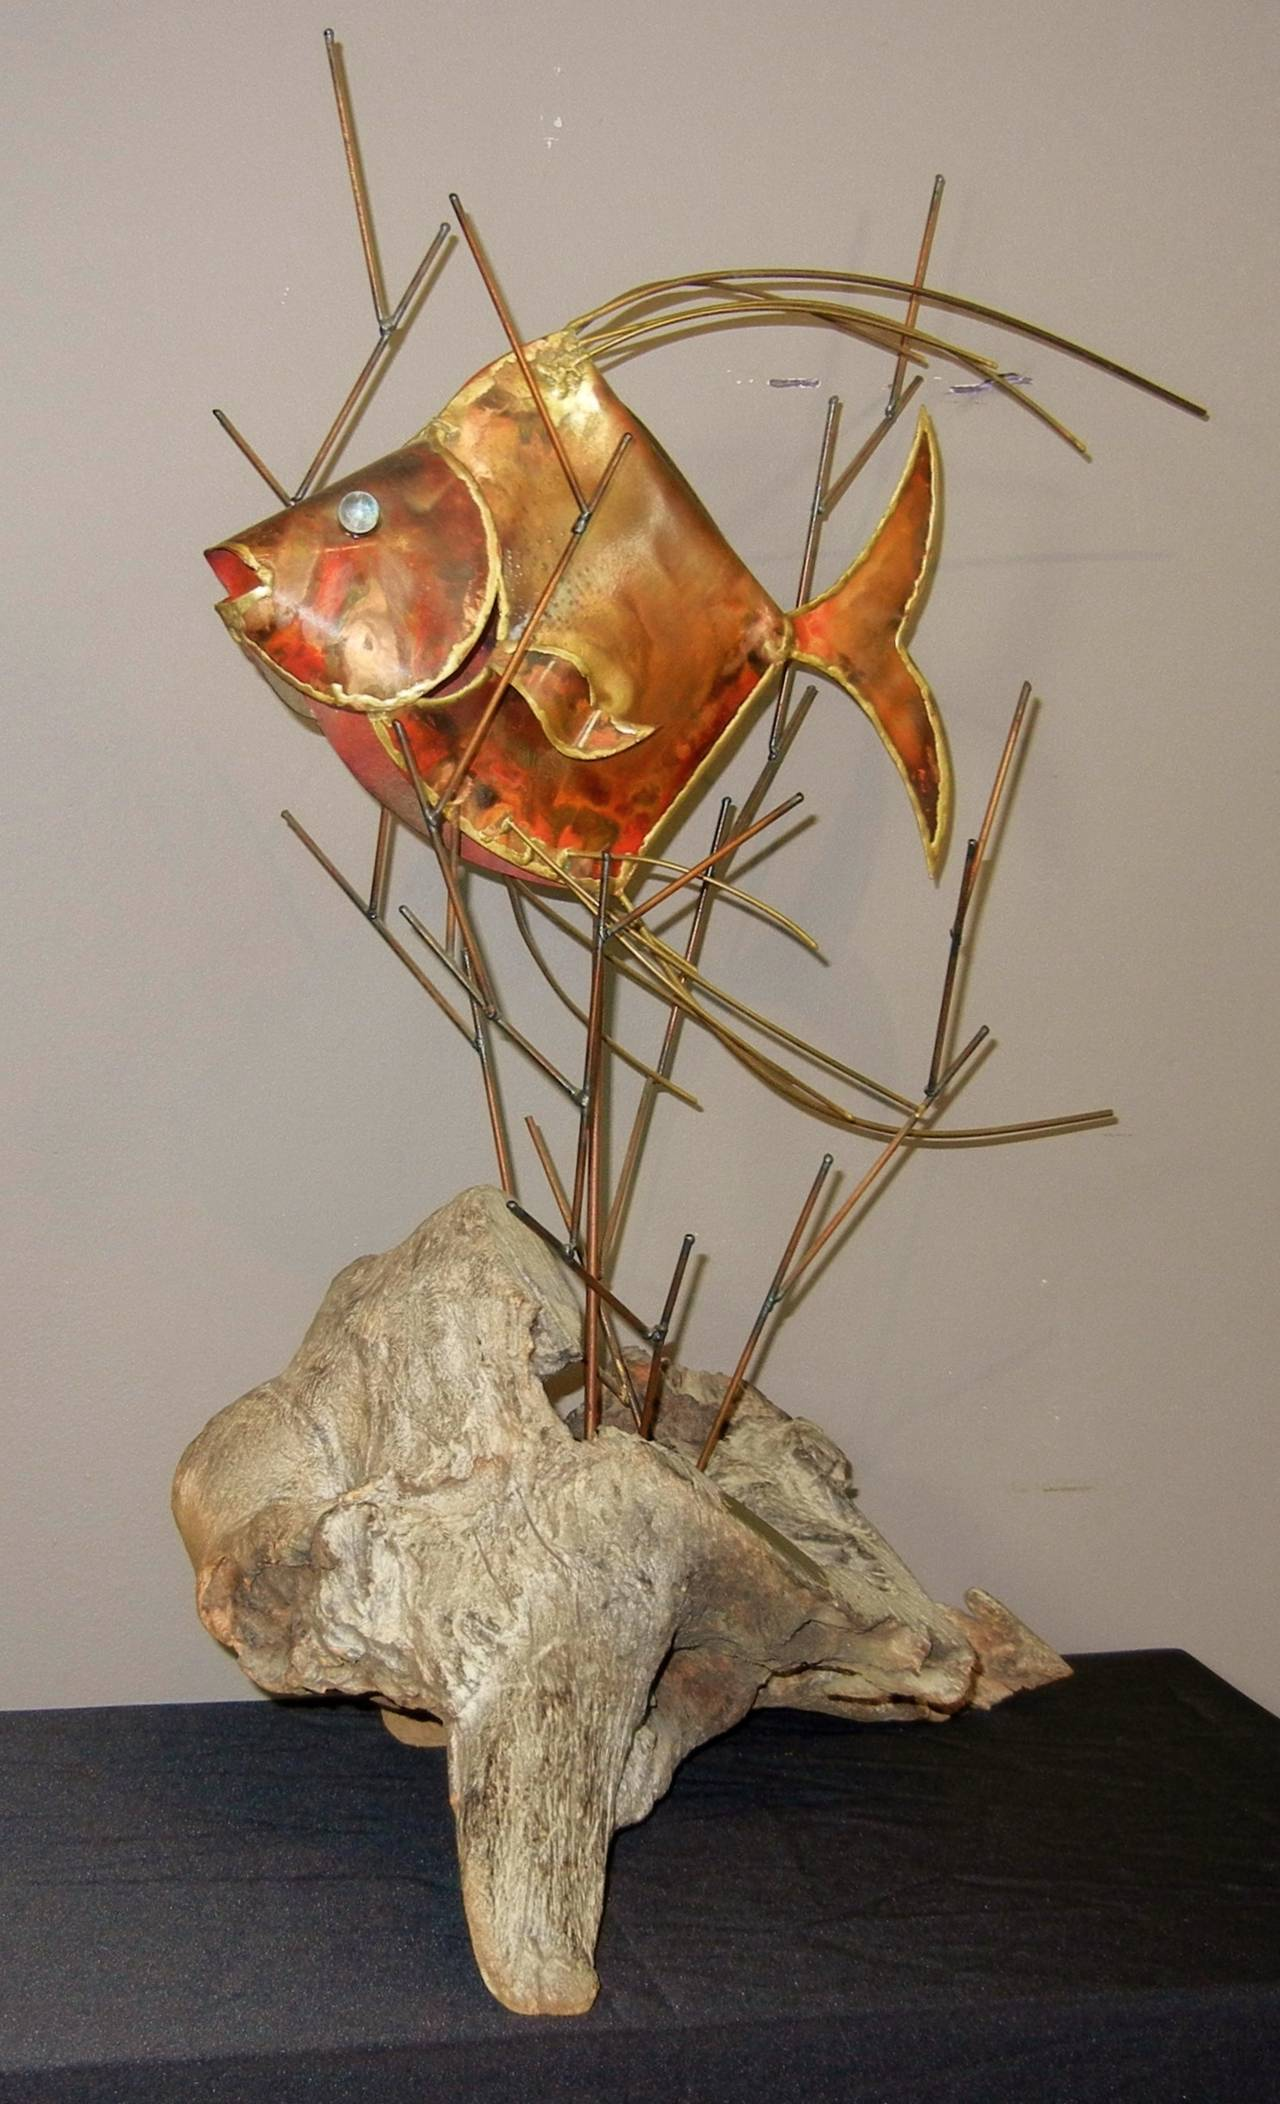 This fine midcentury hollow fish sculpture is by New York State artist Alex Kovacs in cooper, steel and driftwood in the Brutalist manner. It is signed and dated in a plaque